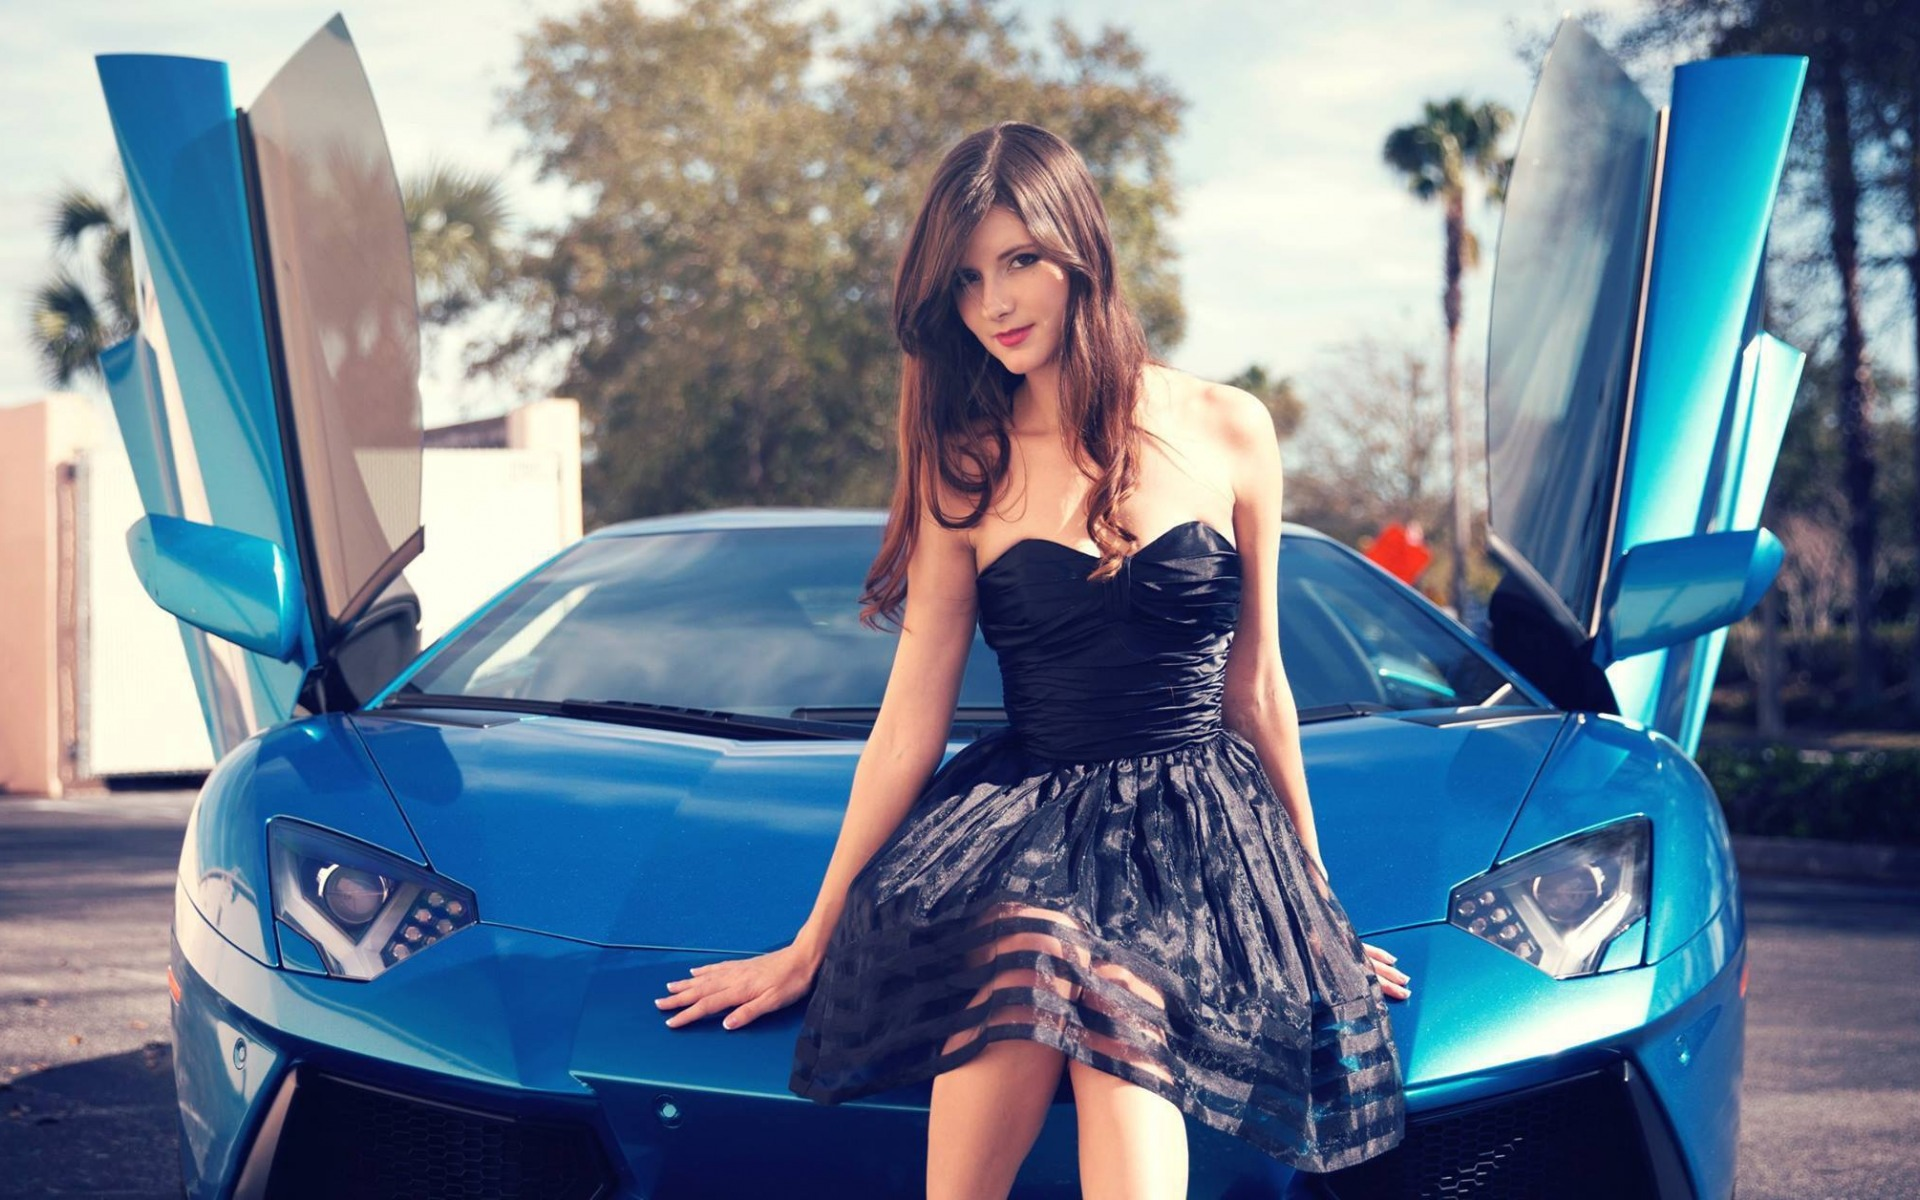 Girls Amp Cars Hd Wallpaper Background Image 1920x1200